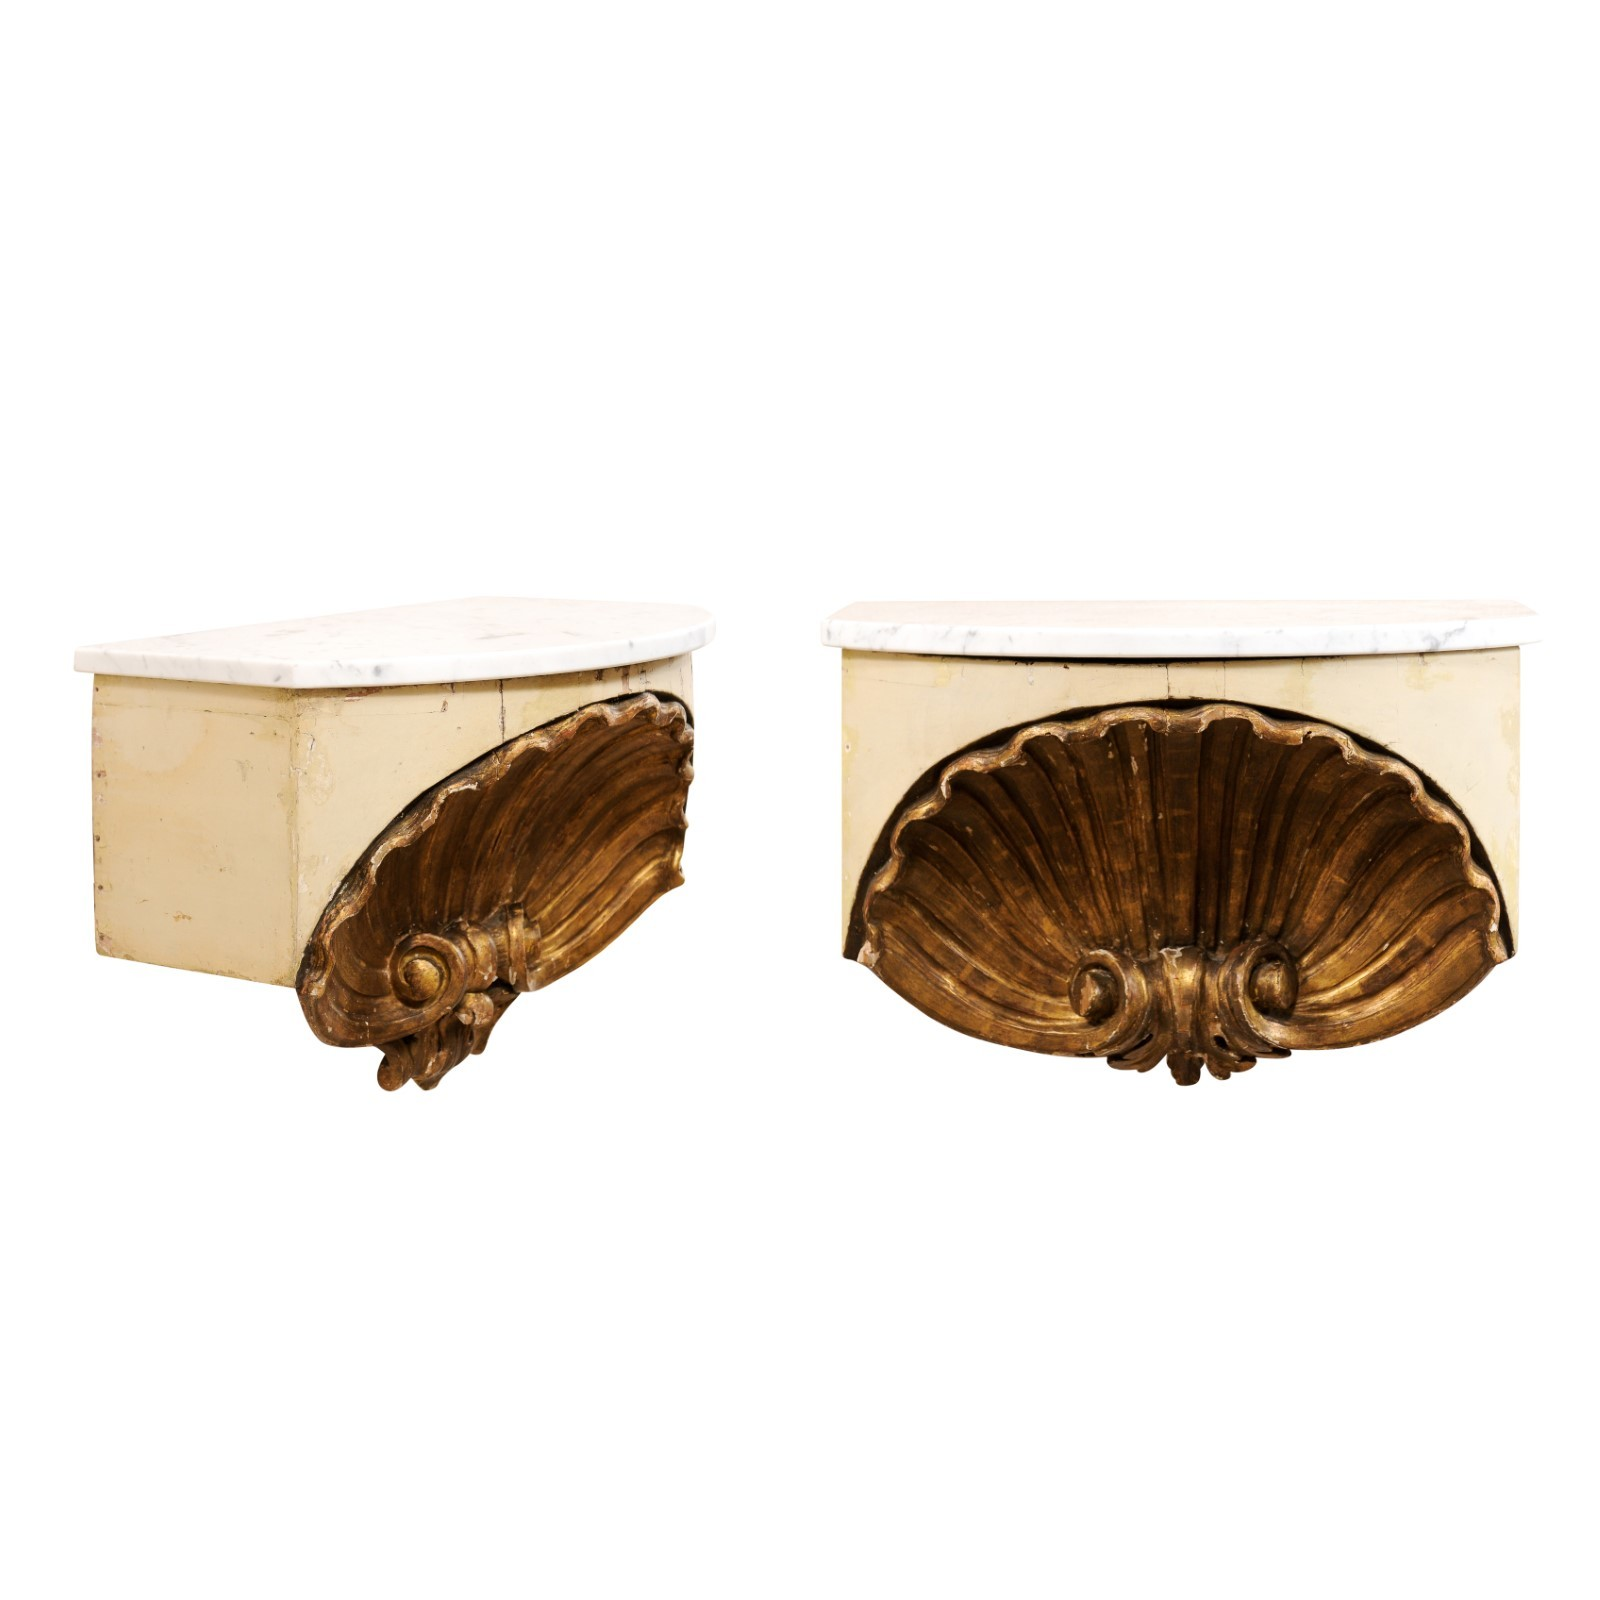 Pair Italian Shell Carved Wall Shelves